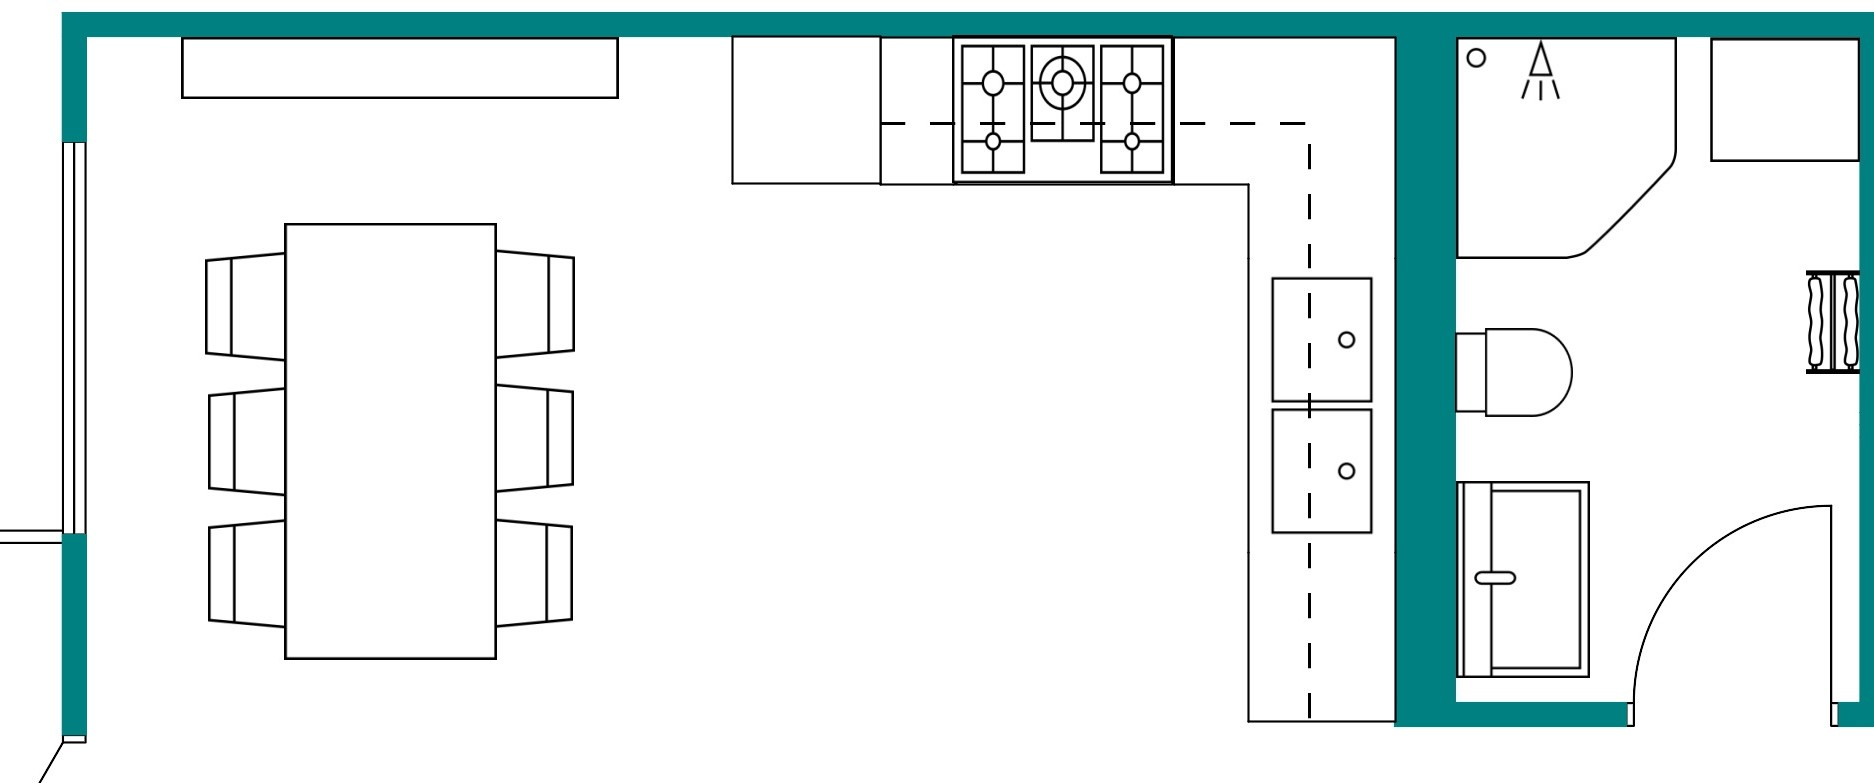 My_First_Project_-_Level_1_-_2D_Floor_Plan-_teal_wall_color.jpg